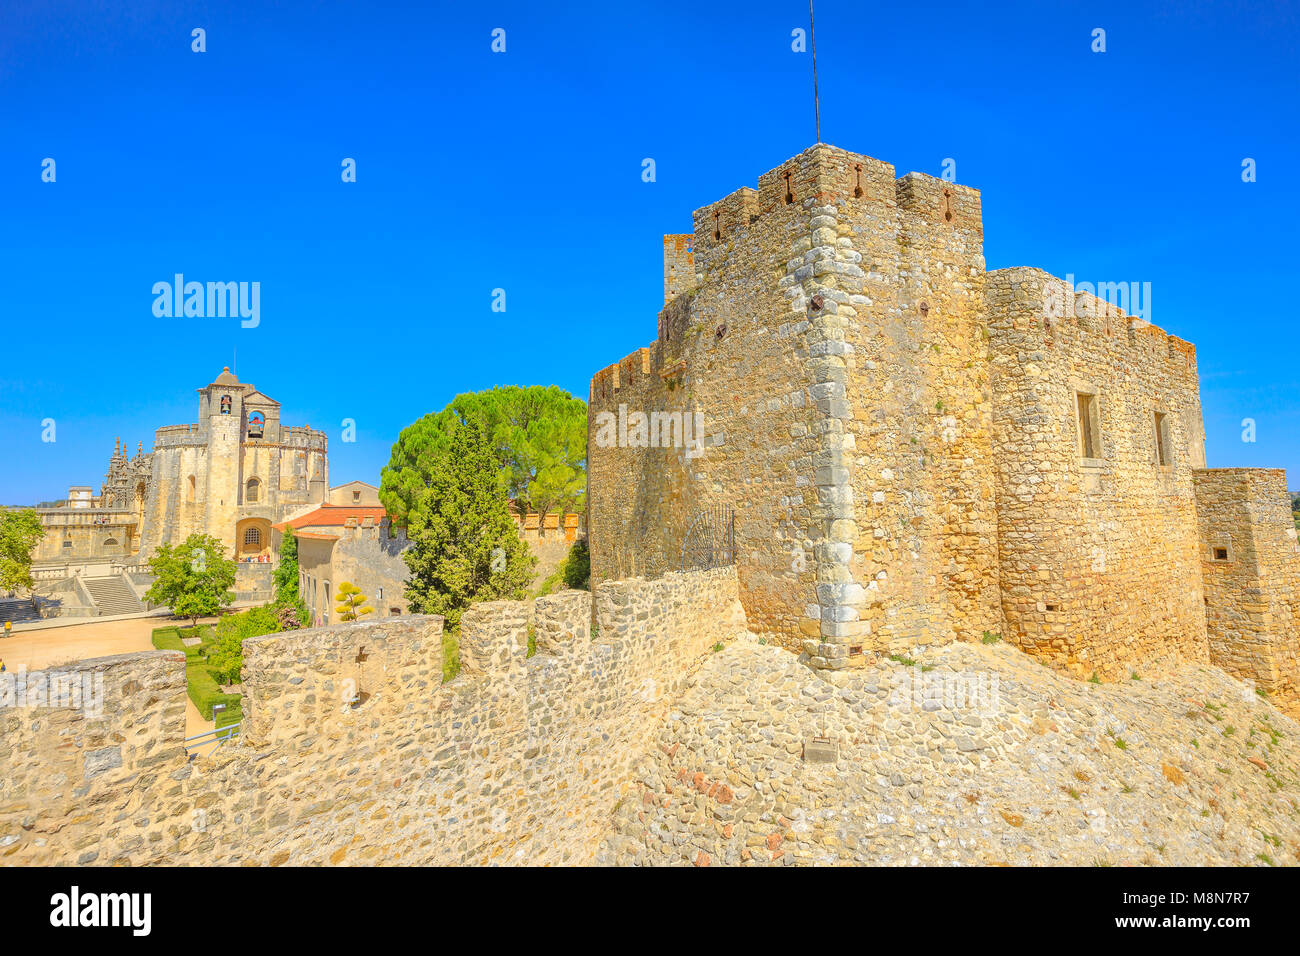 Aerial view of Church of Convent of Christ and ruins of walls in Tomar, Portugal, Unesco Heritage. Tomar convent - Stock Image